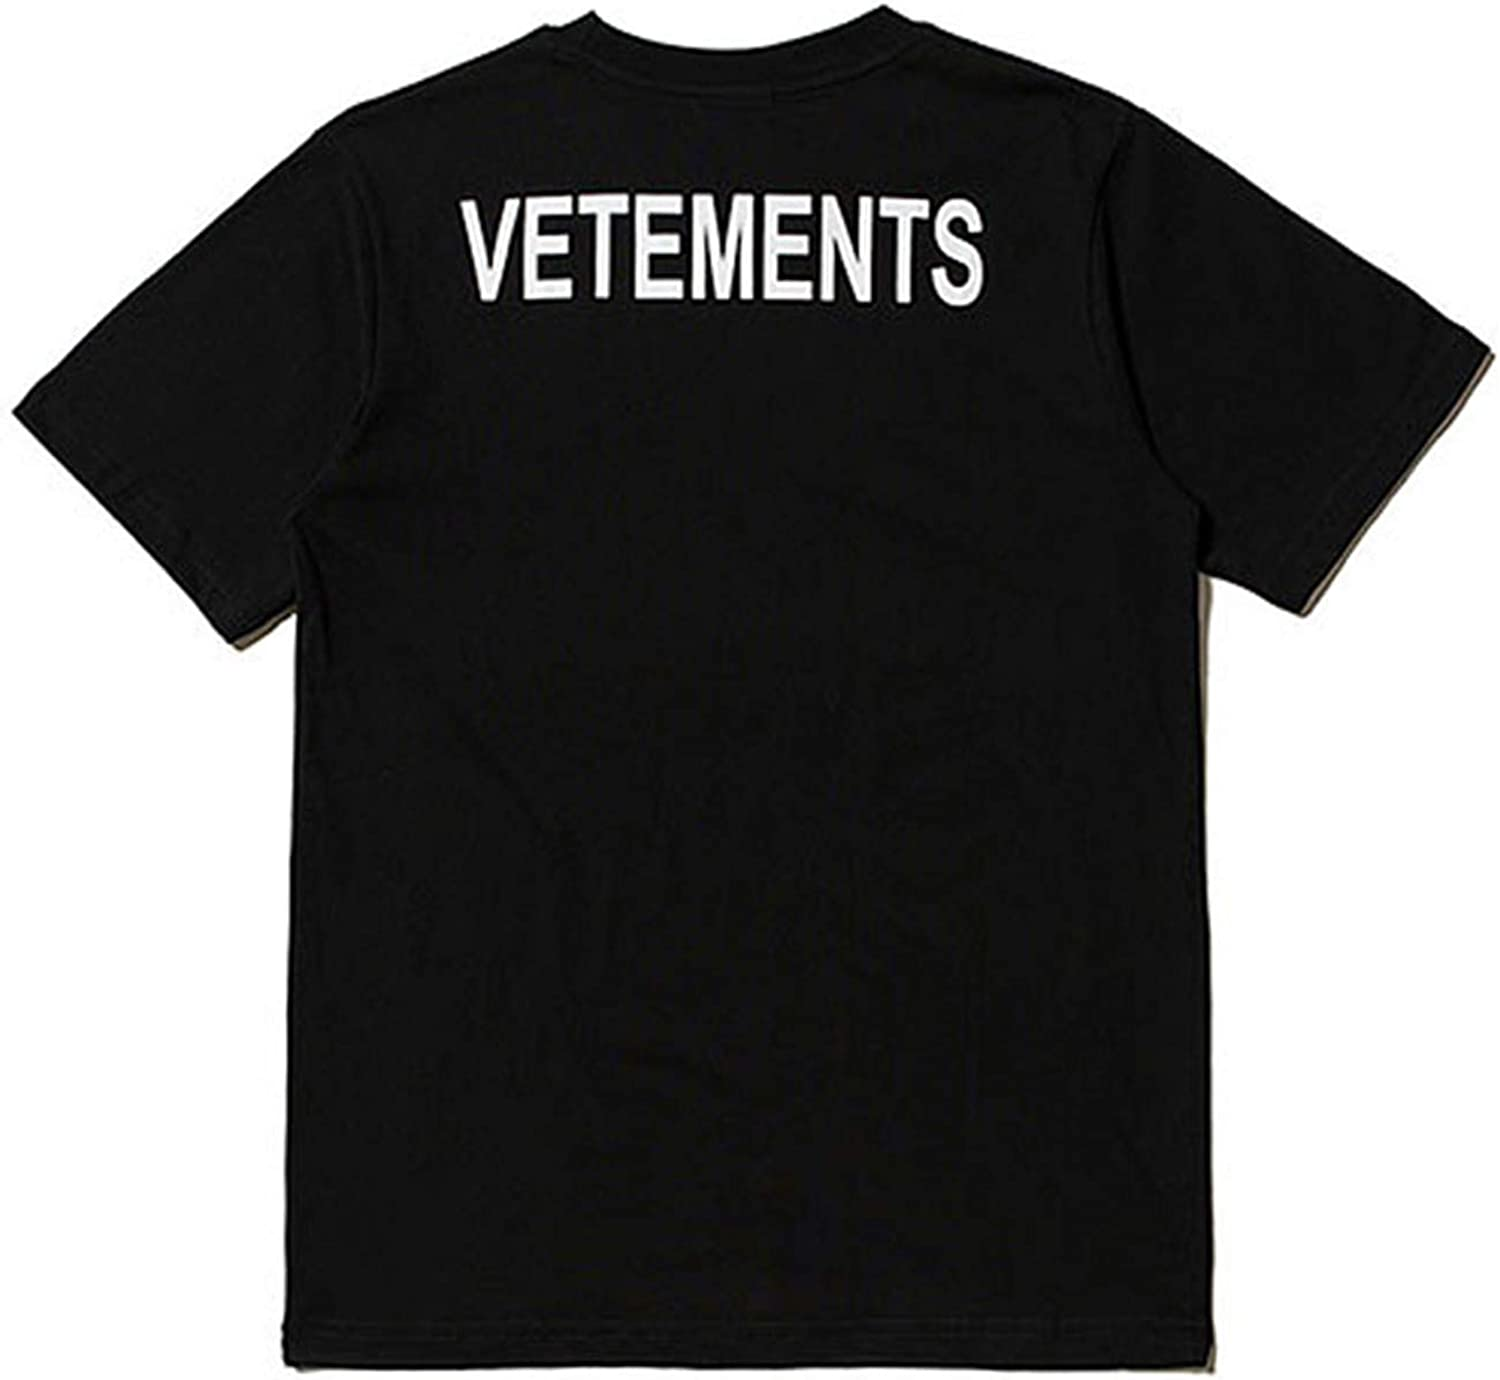 Diamond Story Dress T Shirts Men Women 1:1 Embroidery Both Sides Vetements Top Tees Casual T-Shirt